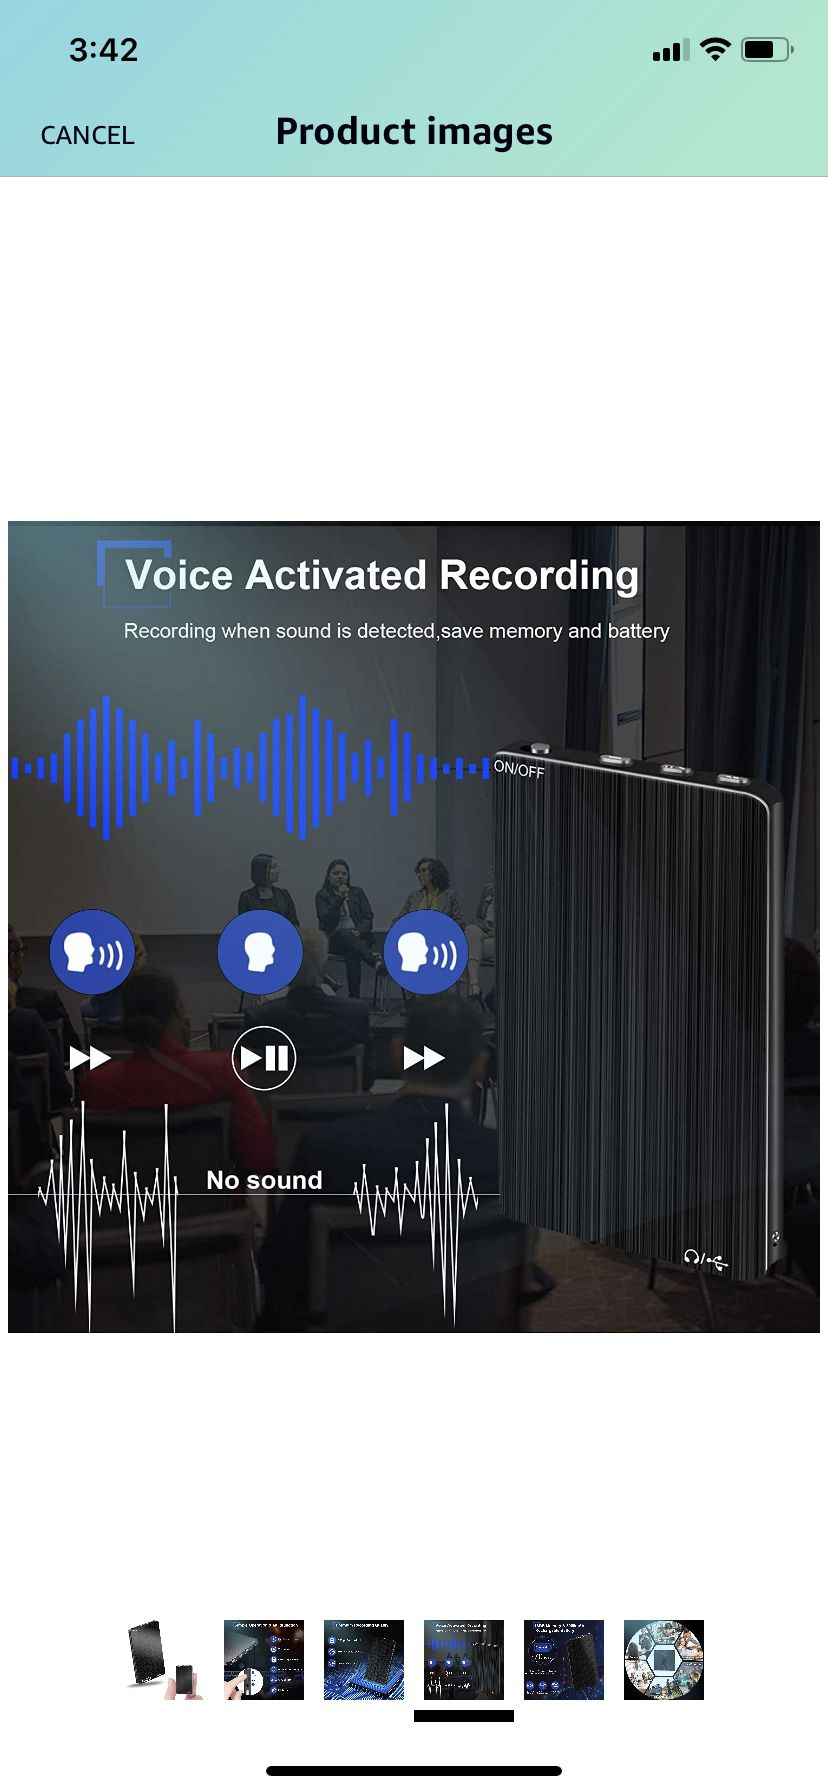 Brand New 16GB Digital Voice Recorder,Henf Voice Activated Recorder with 70 Hours Recording Time,Thinnest Audio Voice Recorder,HD Recording Device wit